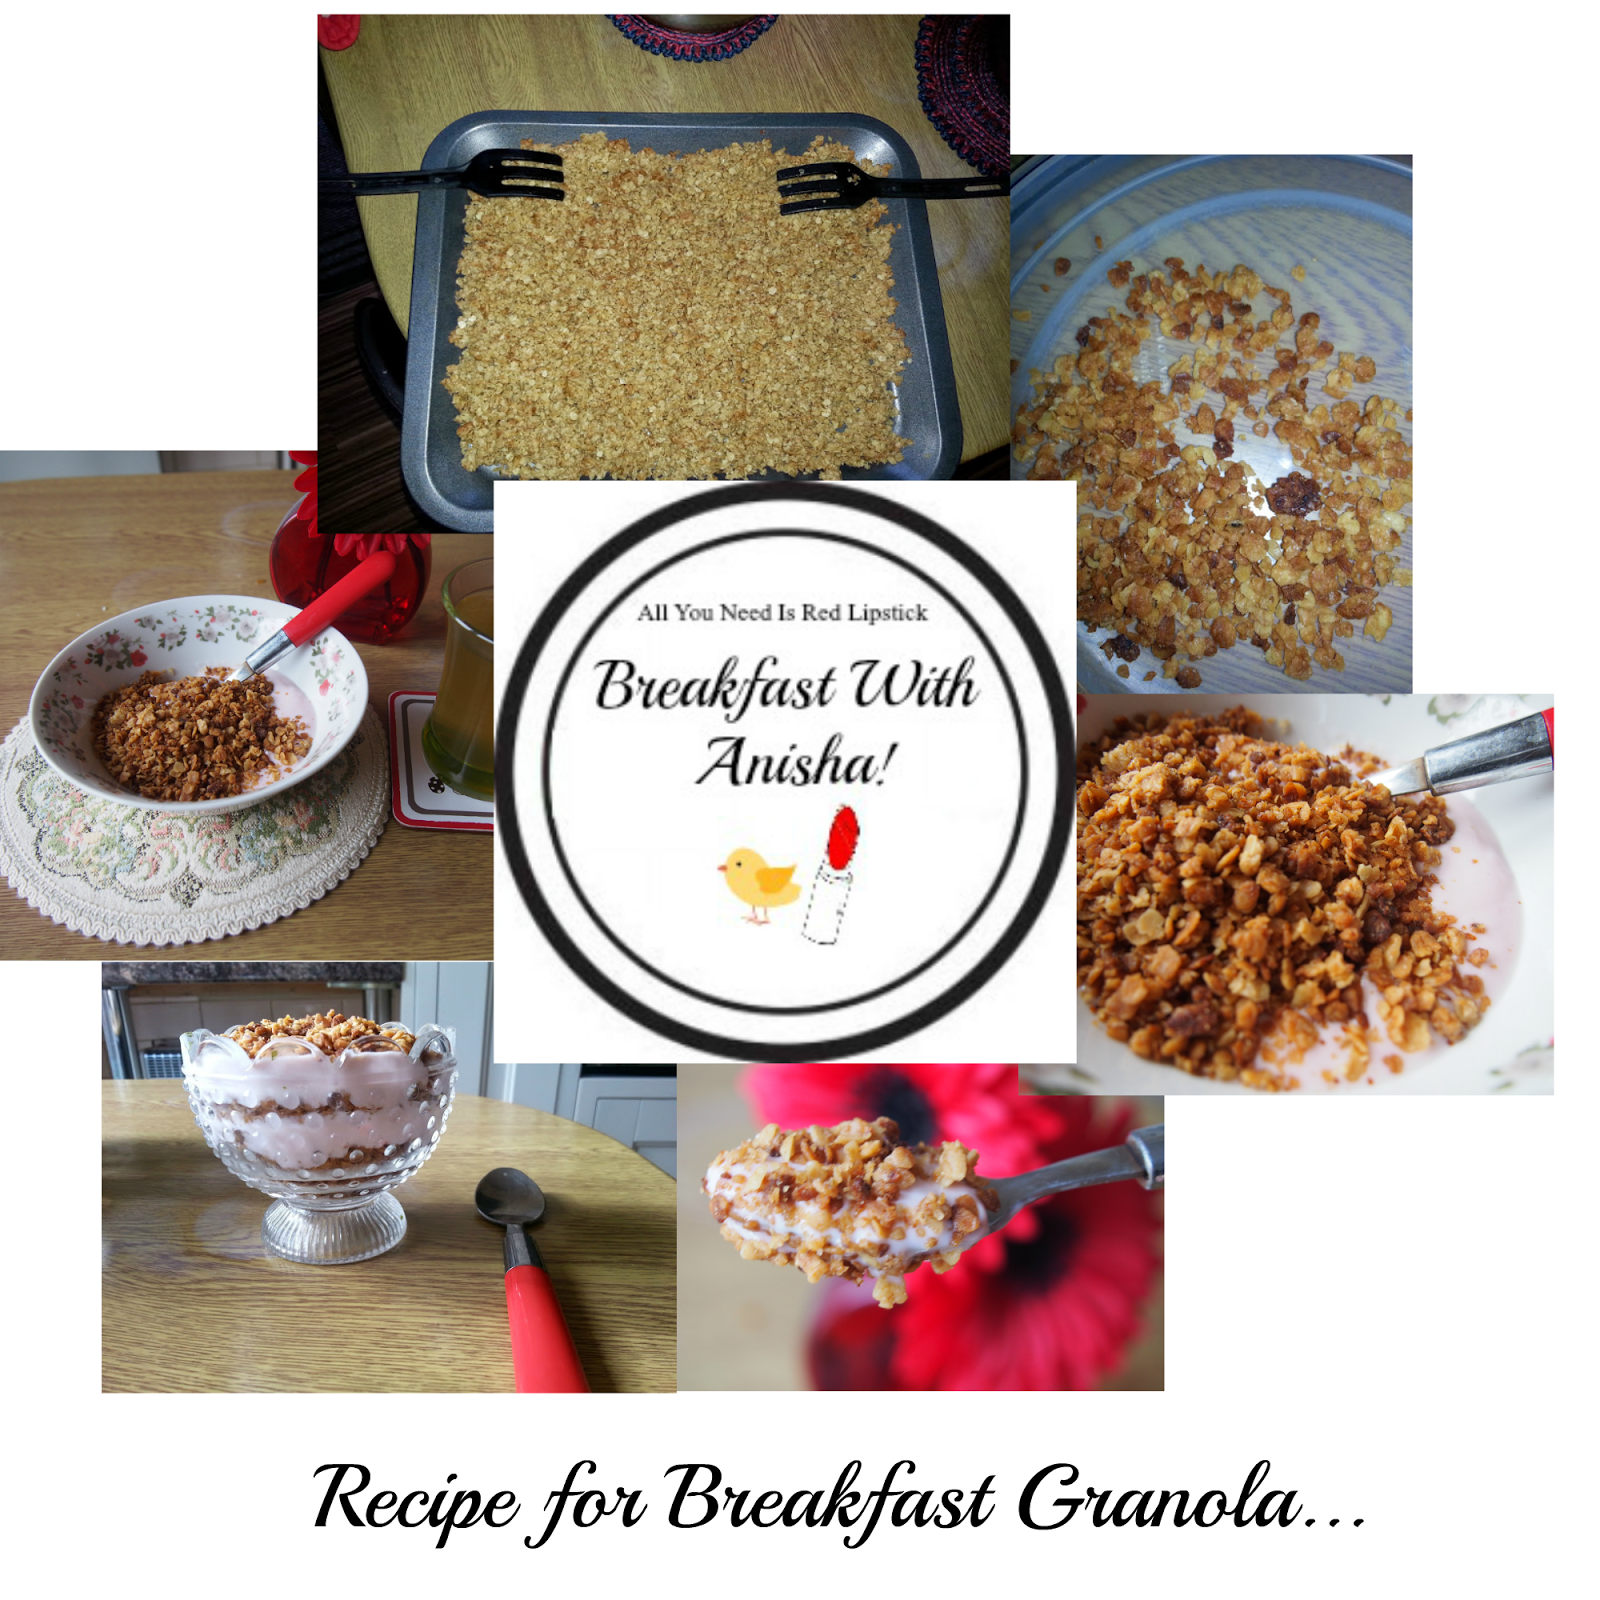 Breakfast with Anisha!: Granola